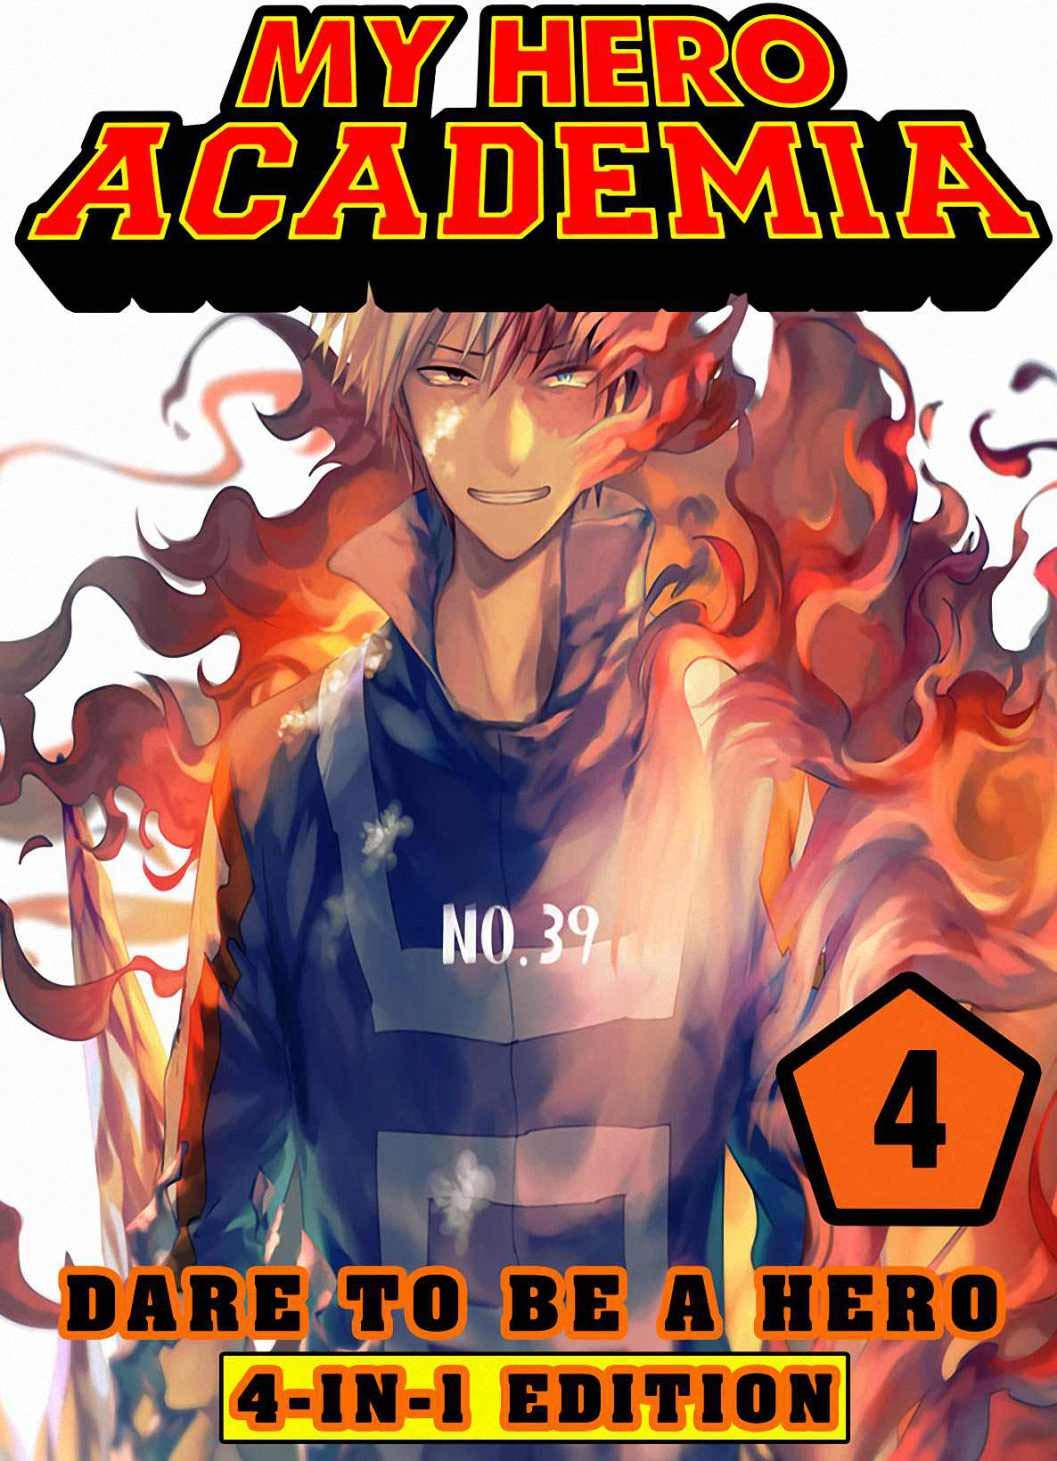 Dare To Be Hero: Book 4 Collection - 4-in-1 Edition - My Hero Academia Manga Adventure Action Shonen For Teen